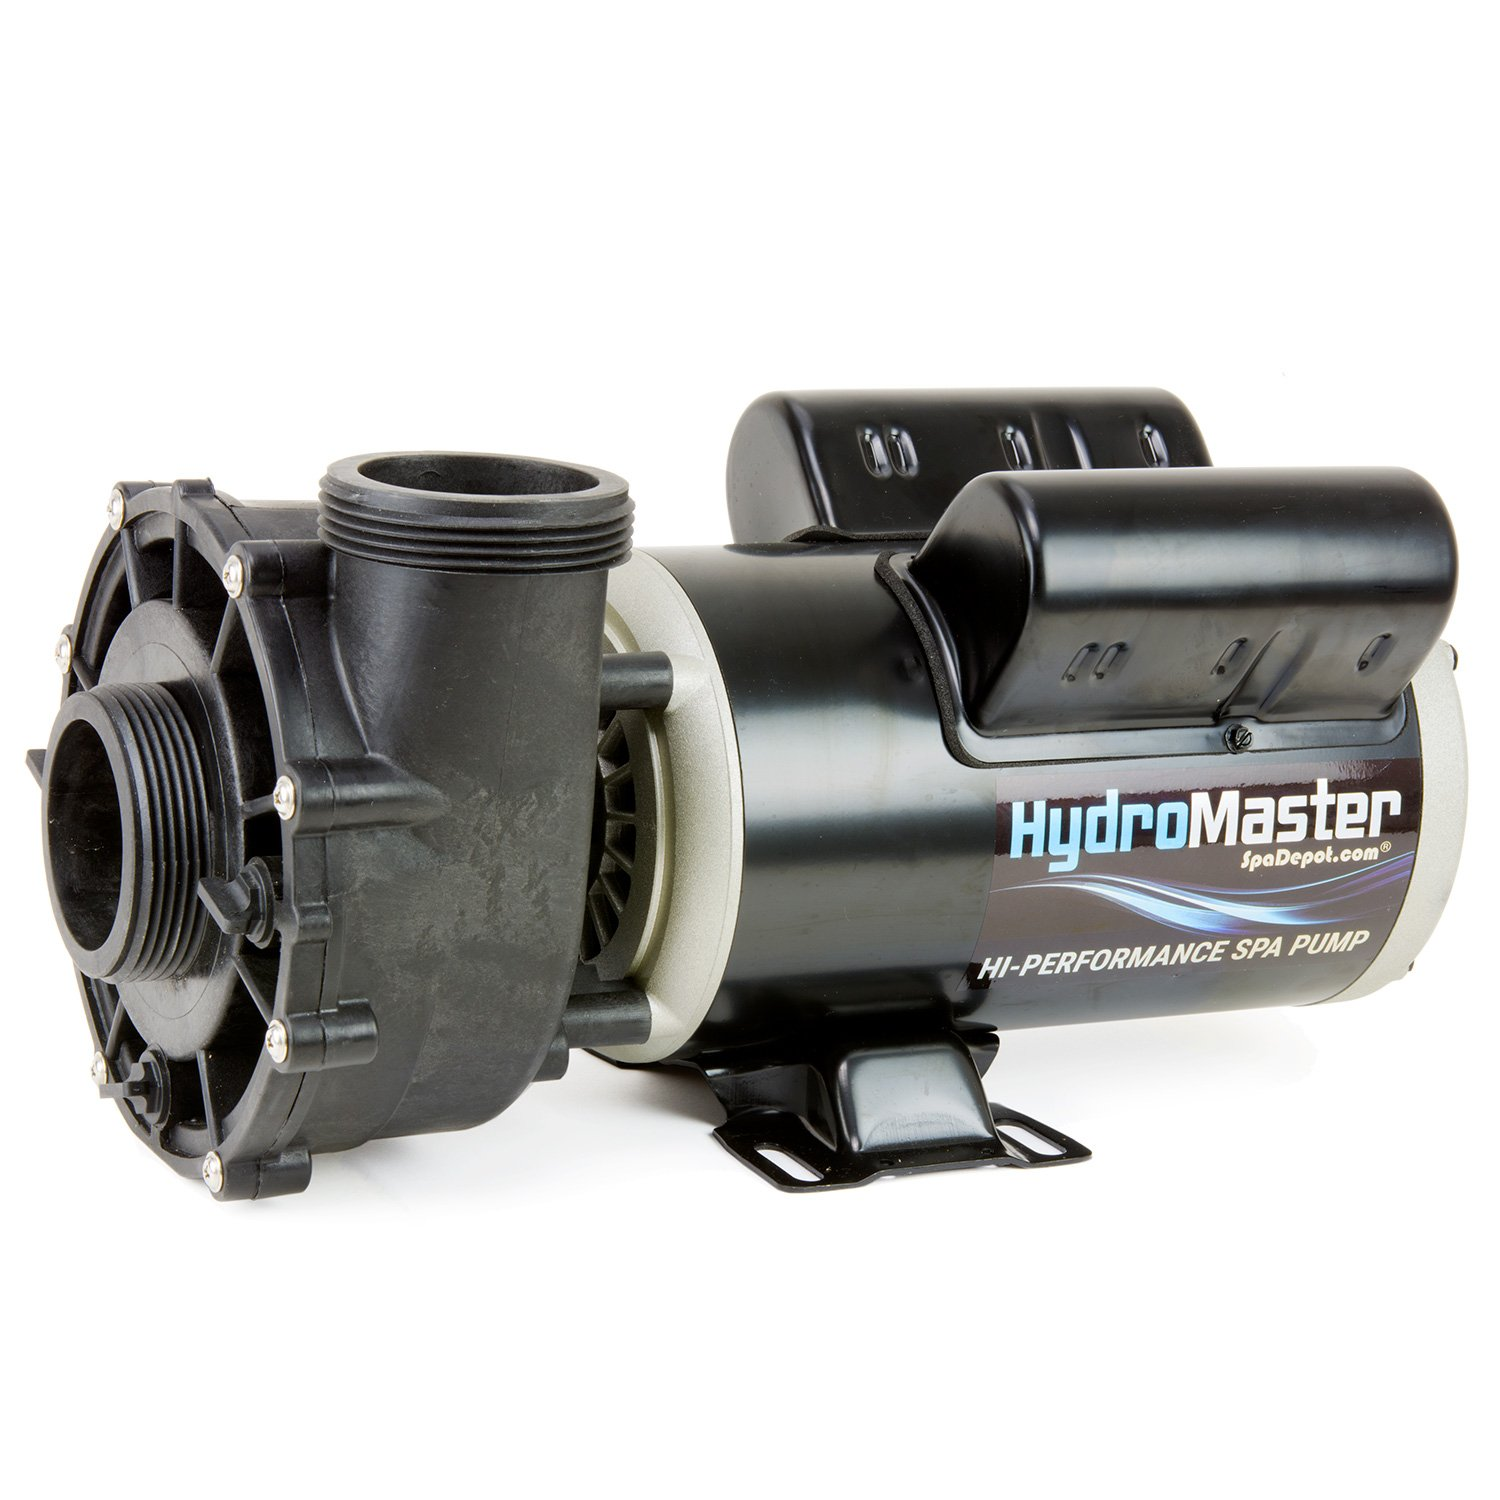 HydroMaster 1.5 HP Hot Tub Spa Pump Side Discharge 2-Sd 48-Frame LX on